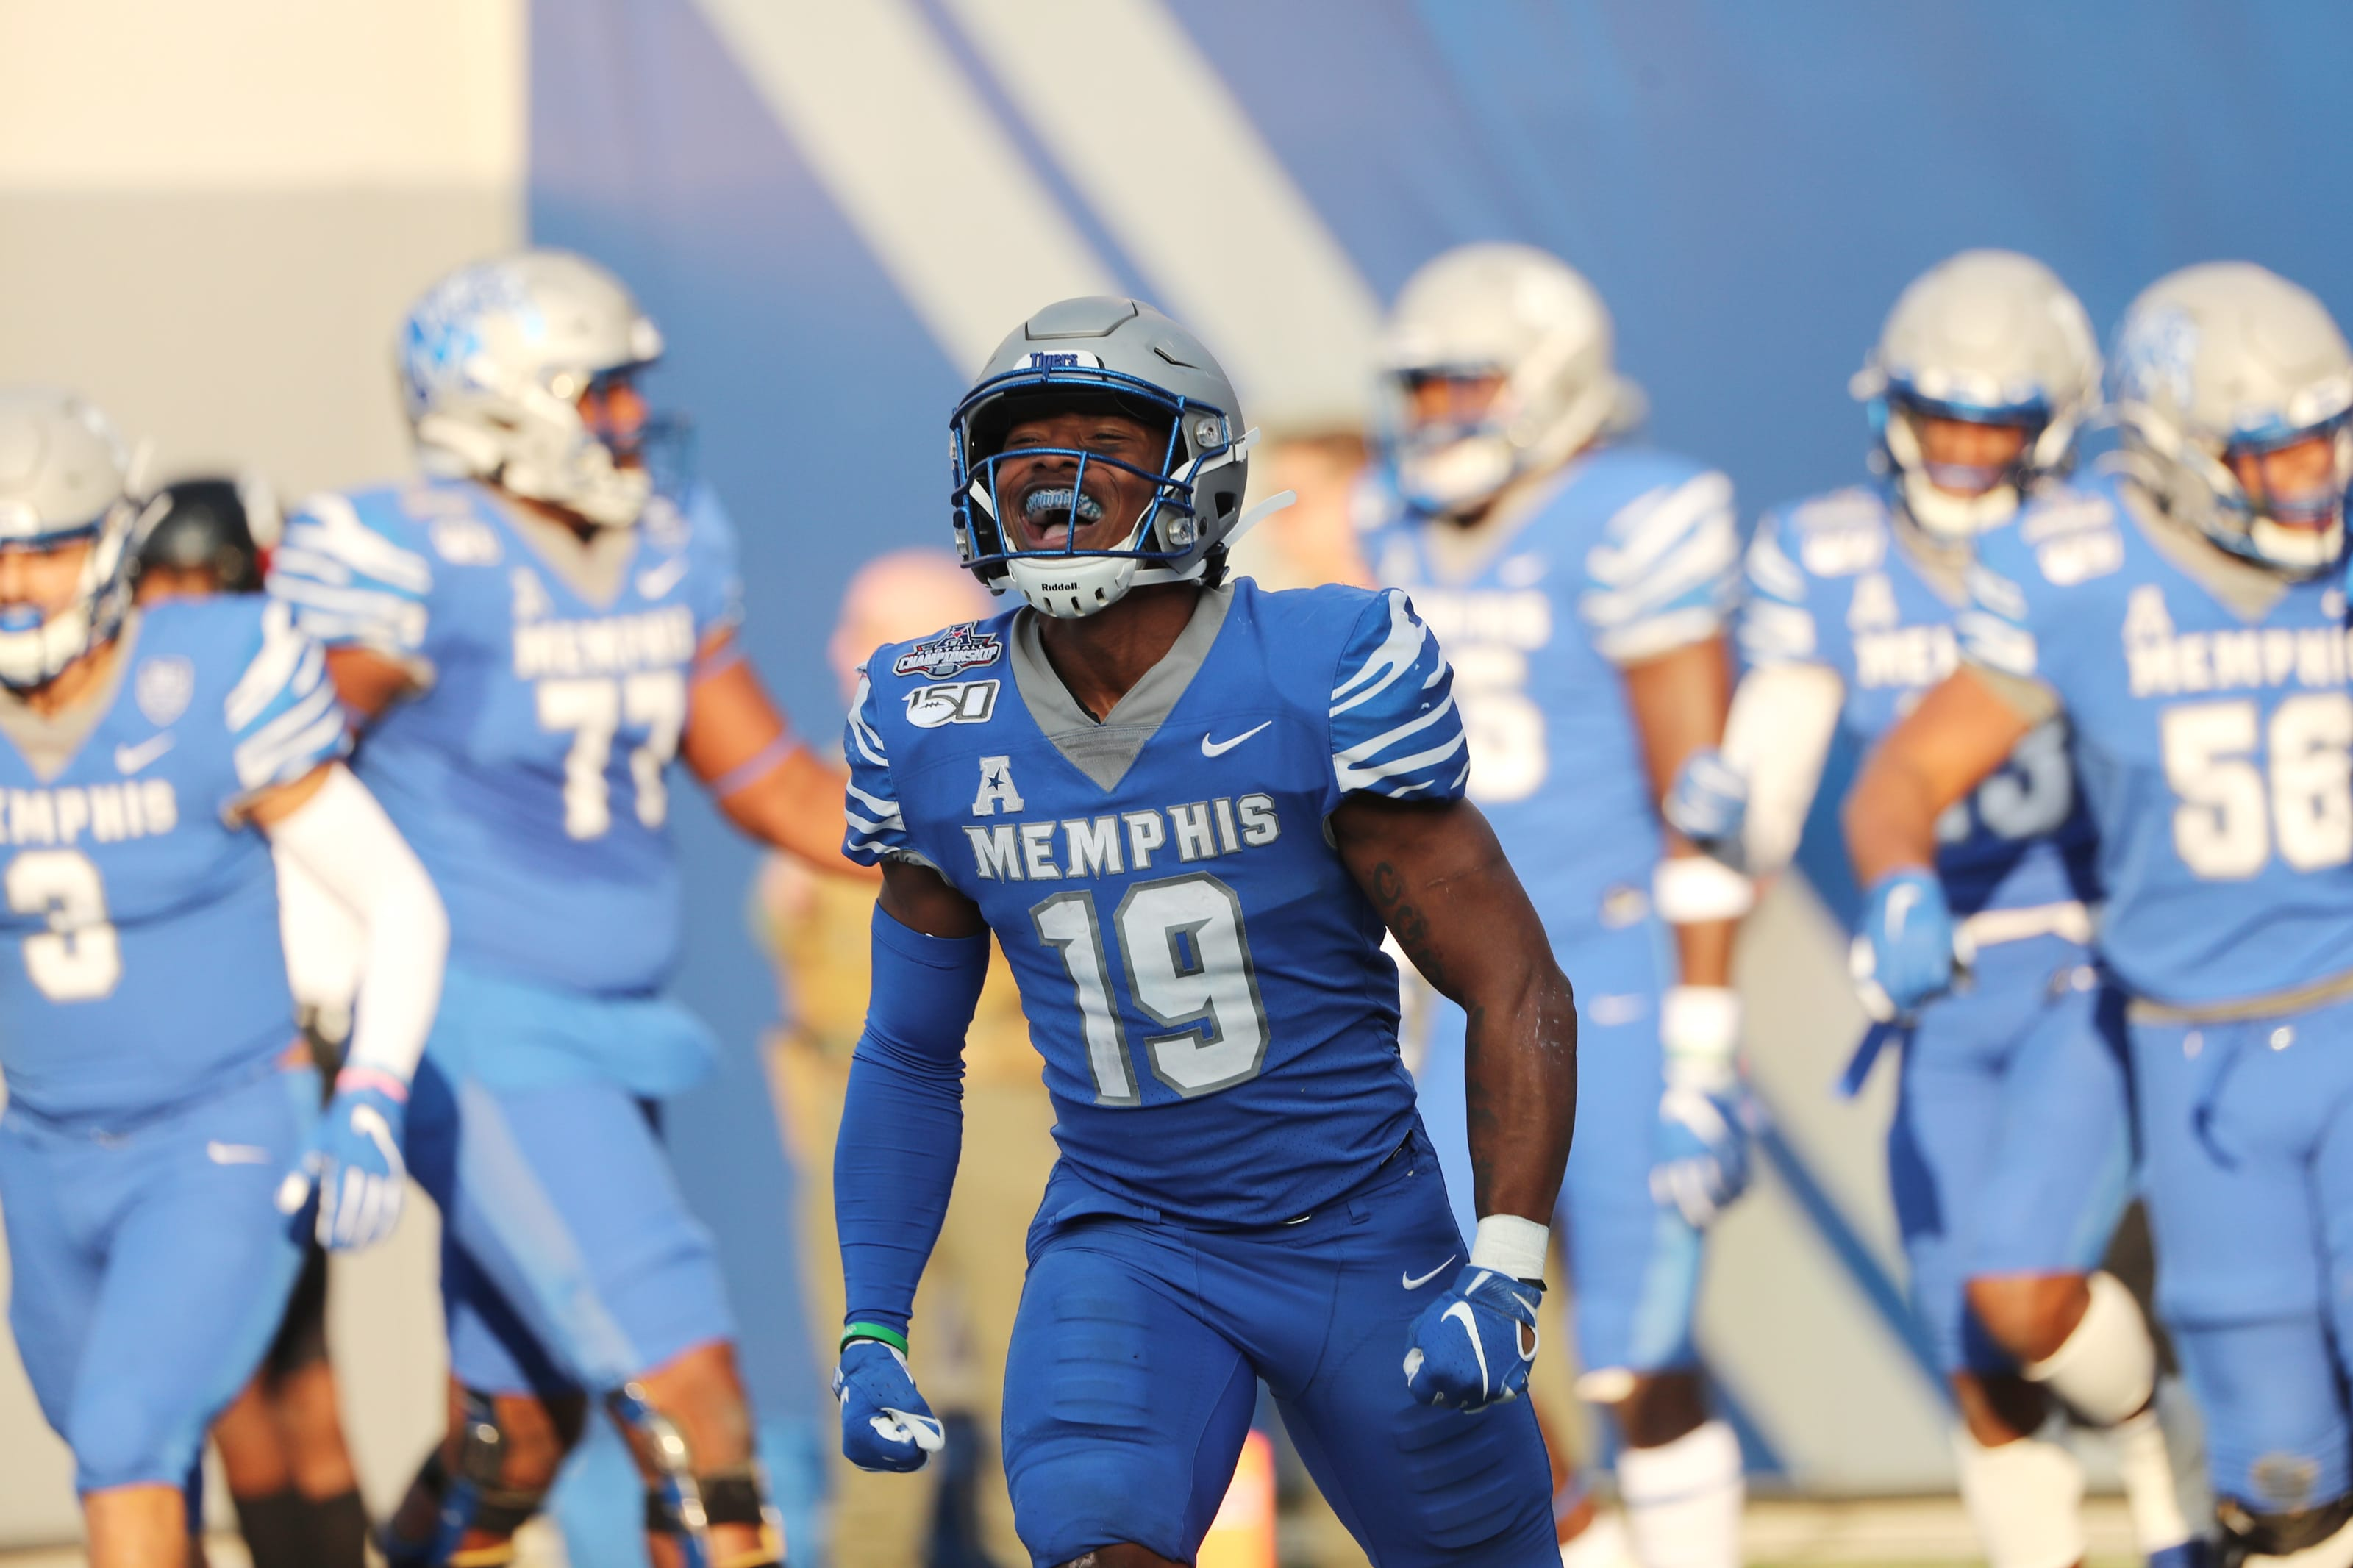 Scouting the 2021 NFL Draft: Memphis RB Kenneth Gainwell - Page 2